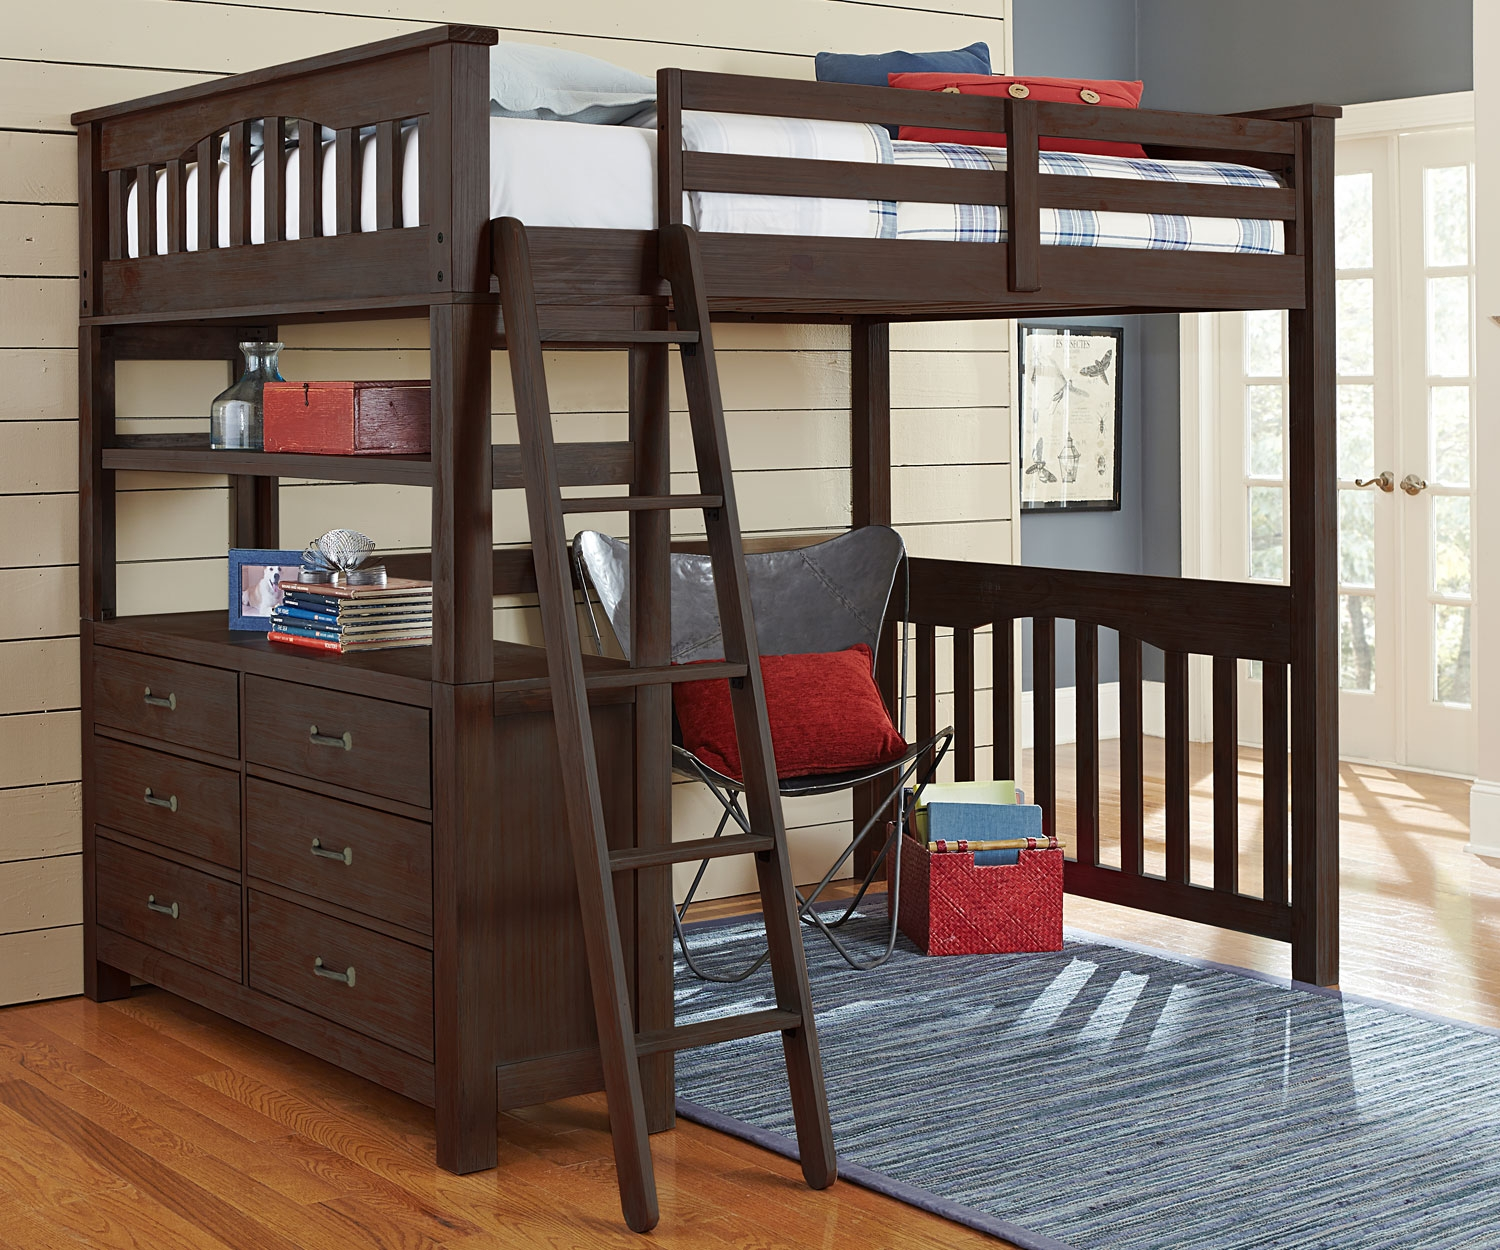 Image of: Full Size Bunk Bed Mattress and Desk